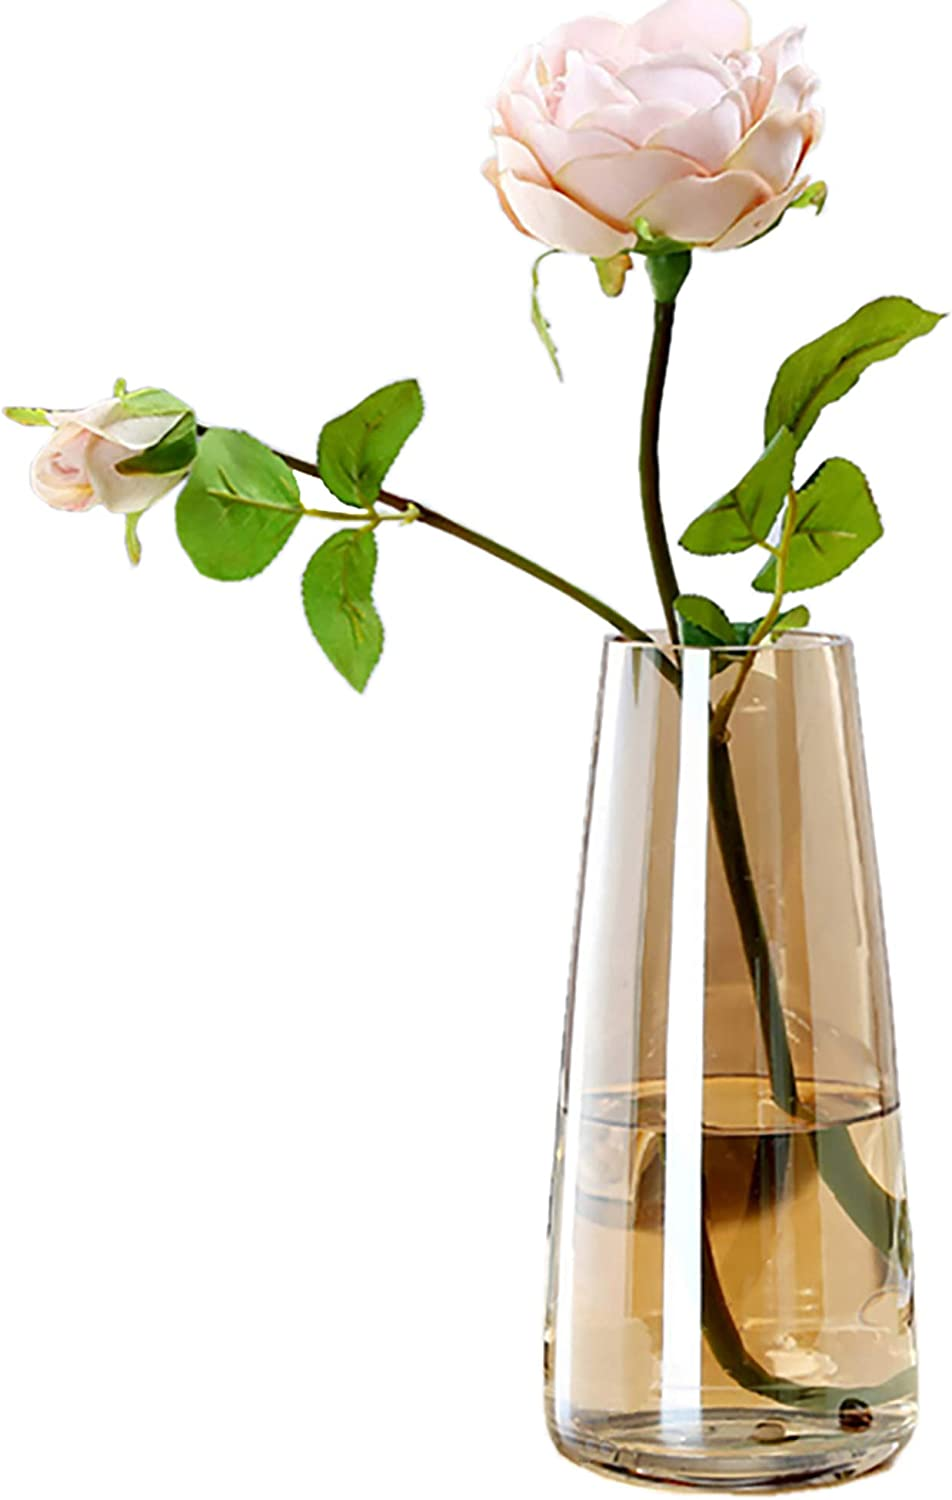 Fantastic Ryan Ins Modern Glass Vase Irised Crystal Clear Glass Vase for Home Office Decor (Crystal Amber)